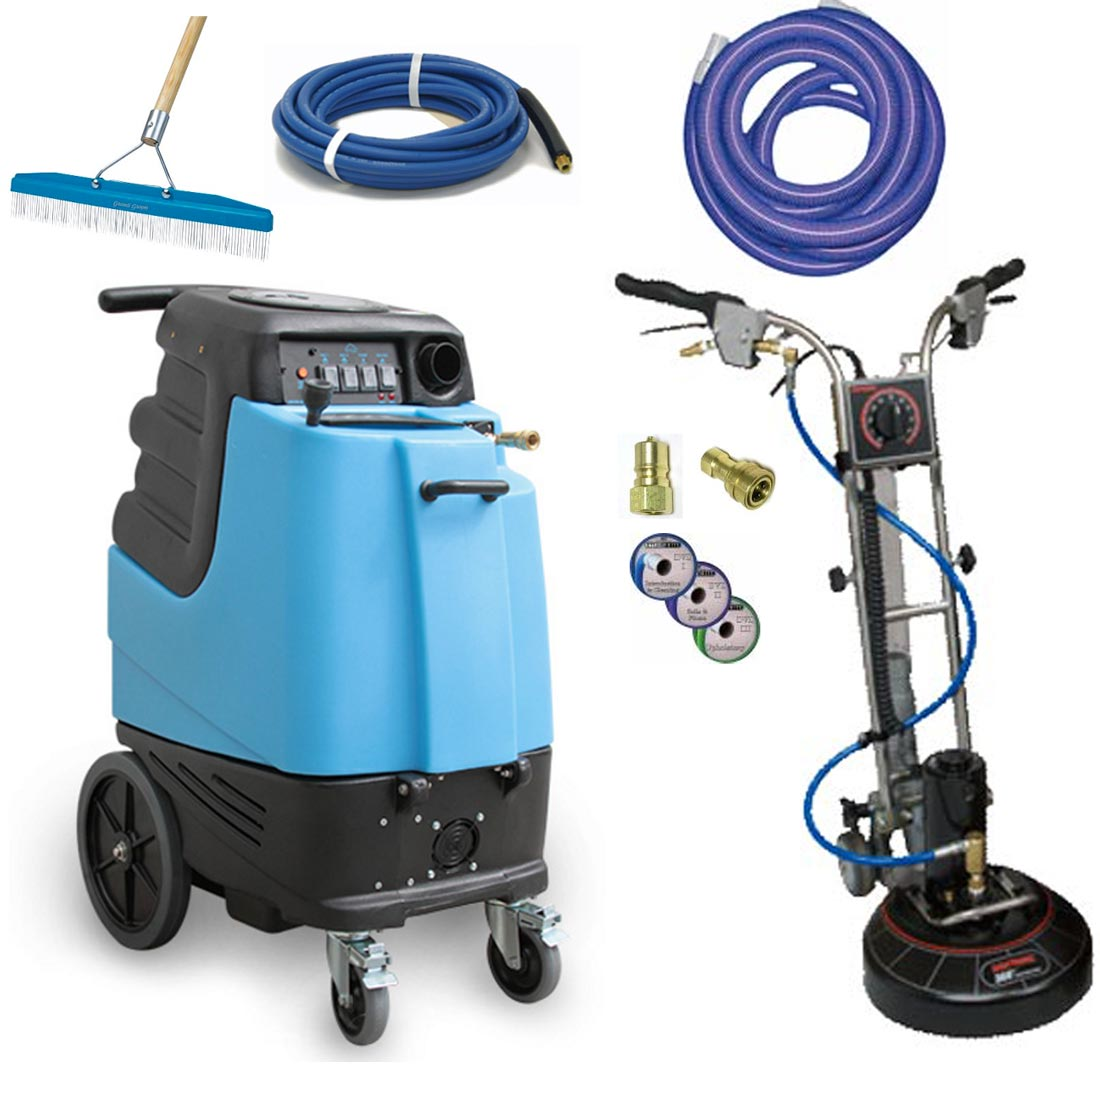 Rotovac 360i + Mytee 1003DX Speedster 12gal 500psi HEATED Dual 3 Stage Vacs Carpet Cleaning Extractor Package